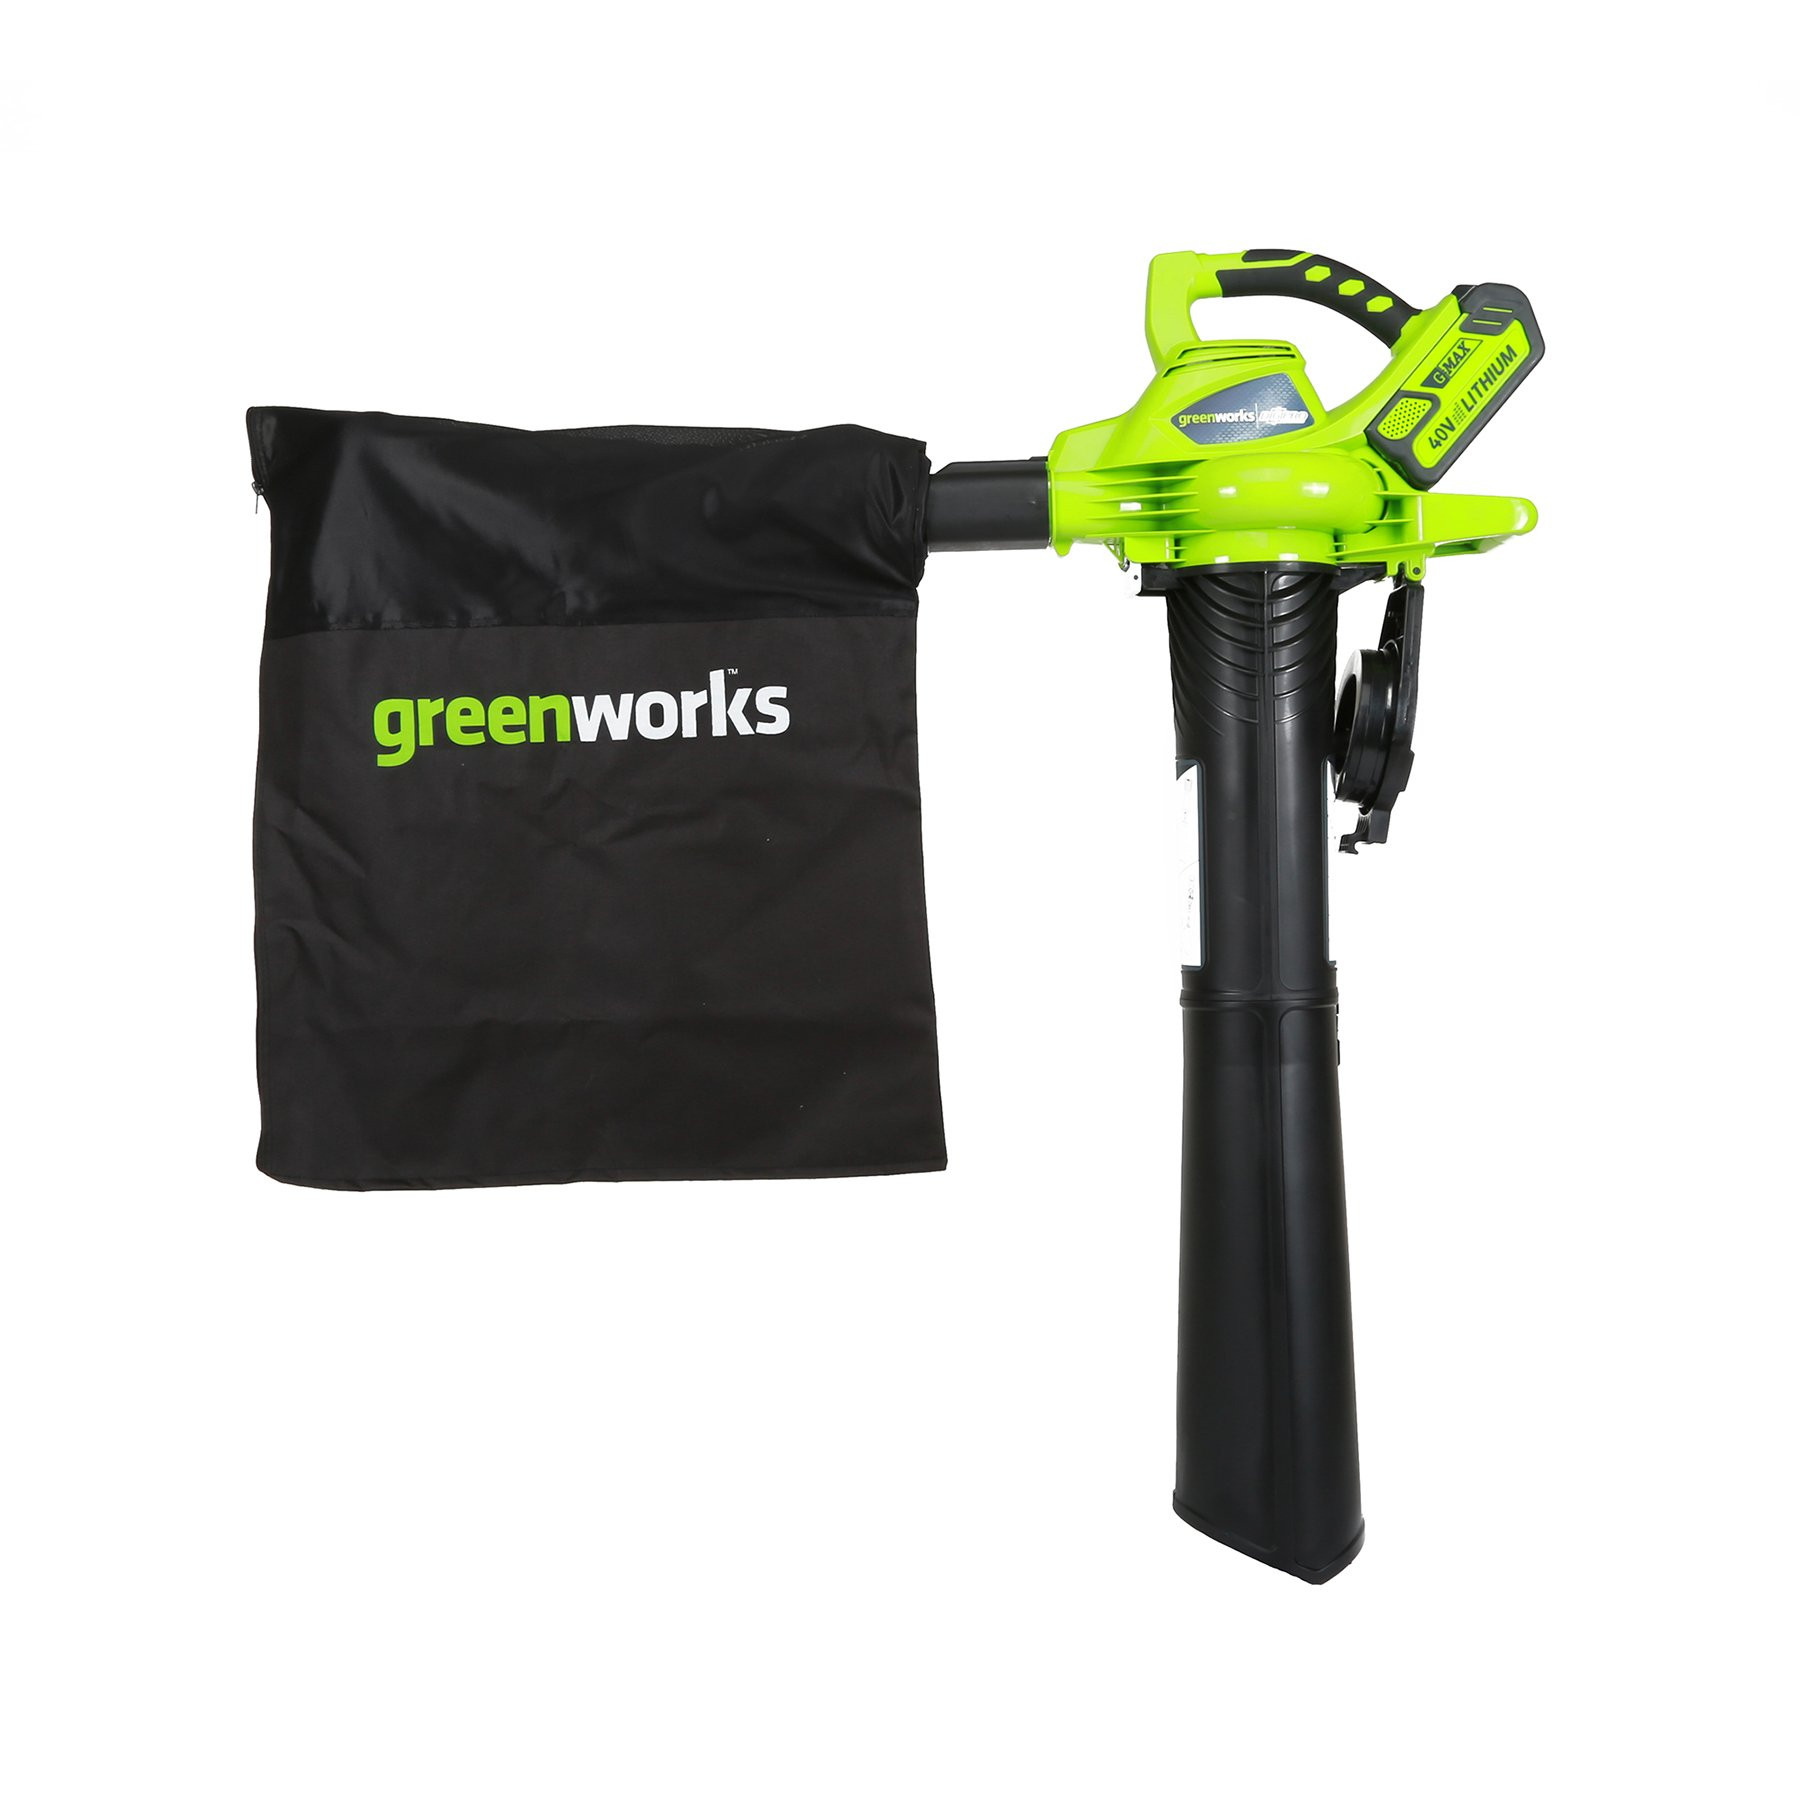 Greenworks 40V 185 MPH Variable Speed Cordless Blower Vacuum, 4.0 AH Battery Included 24322 by Greenworks (Image #7)